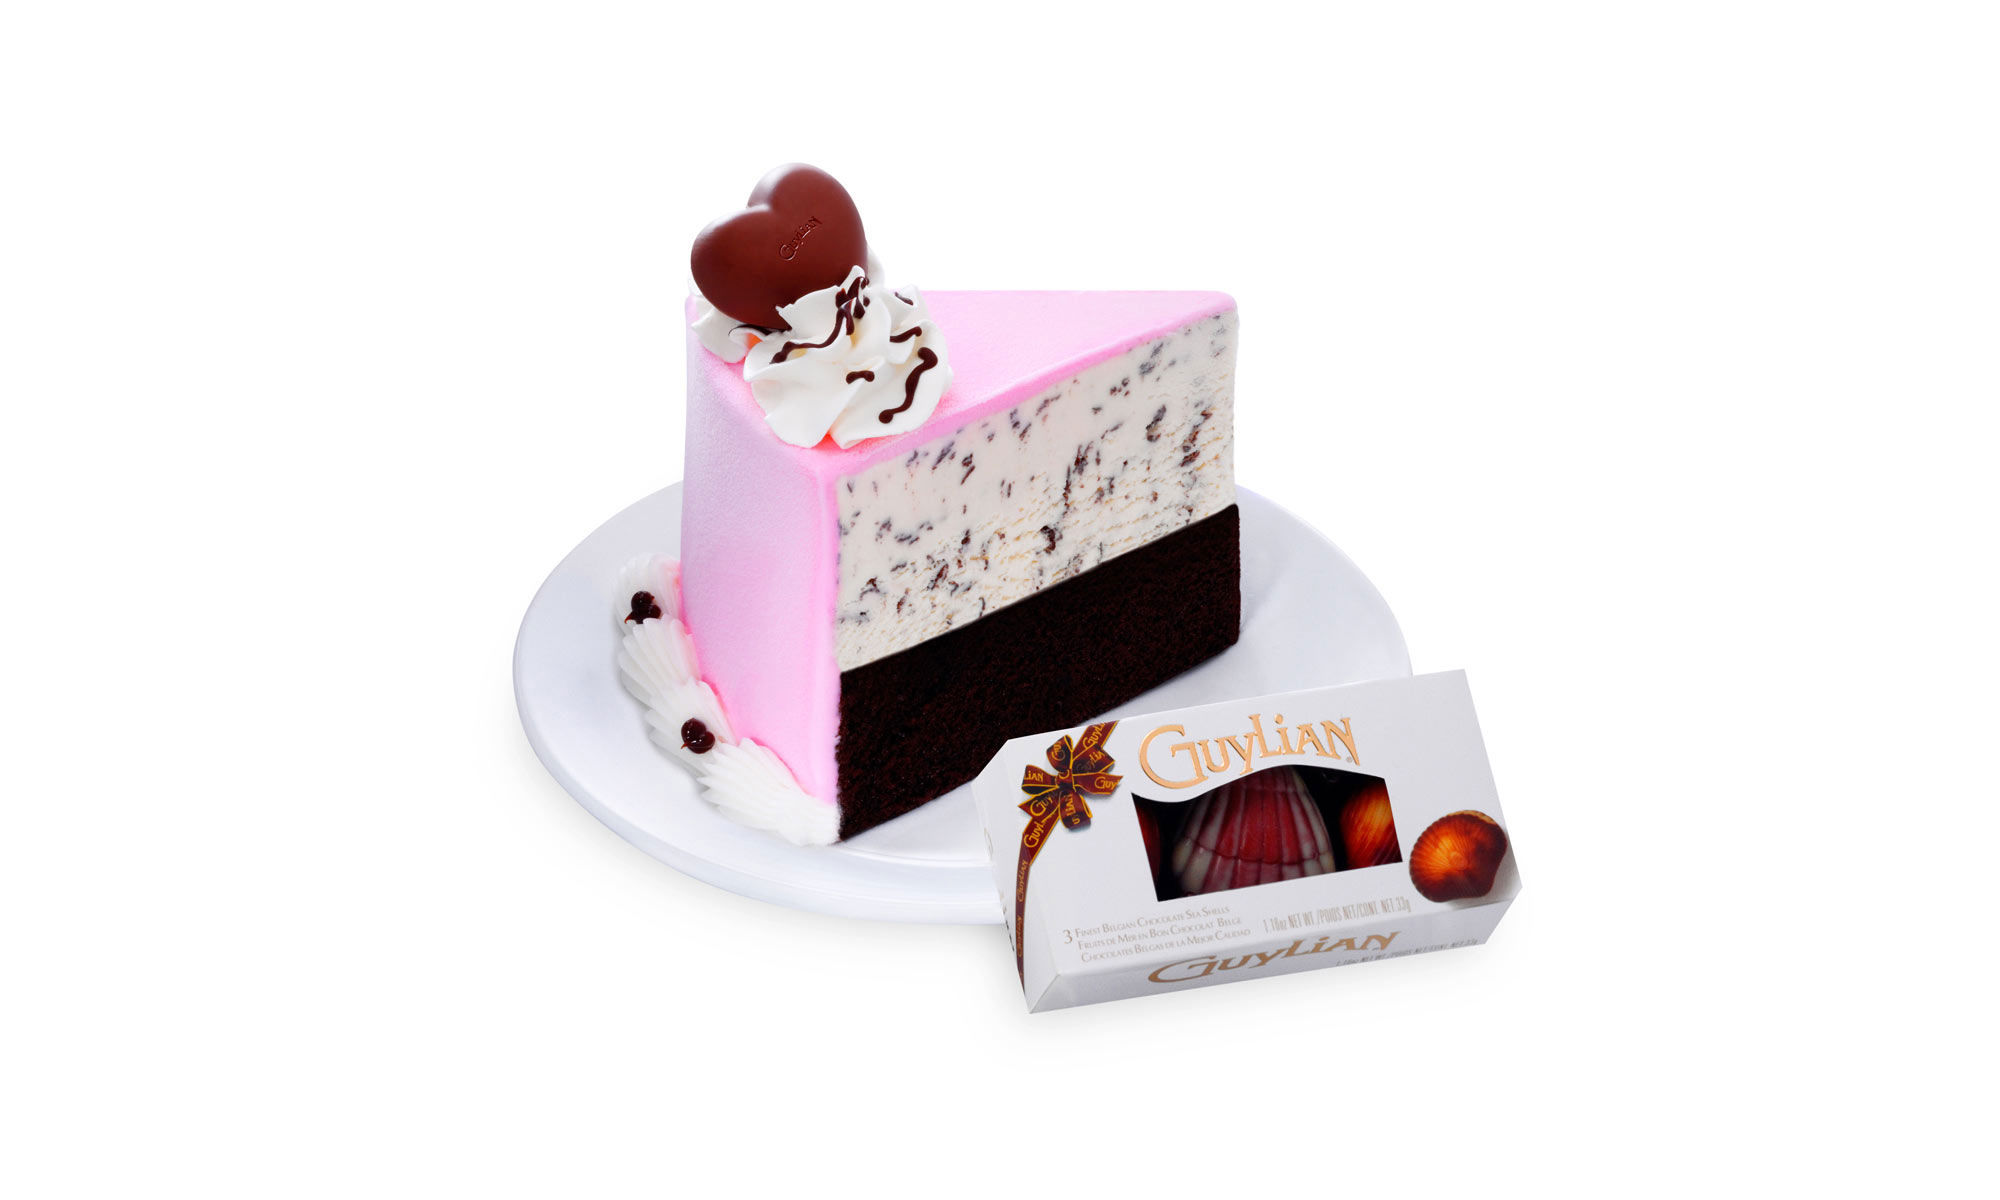 Baskin Robbins Ice Cream Cake